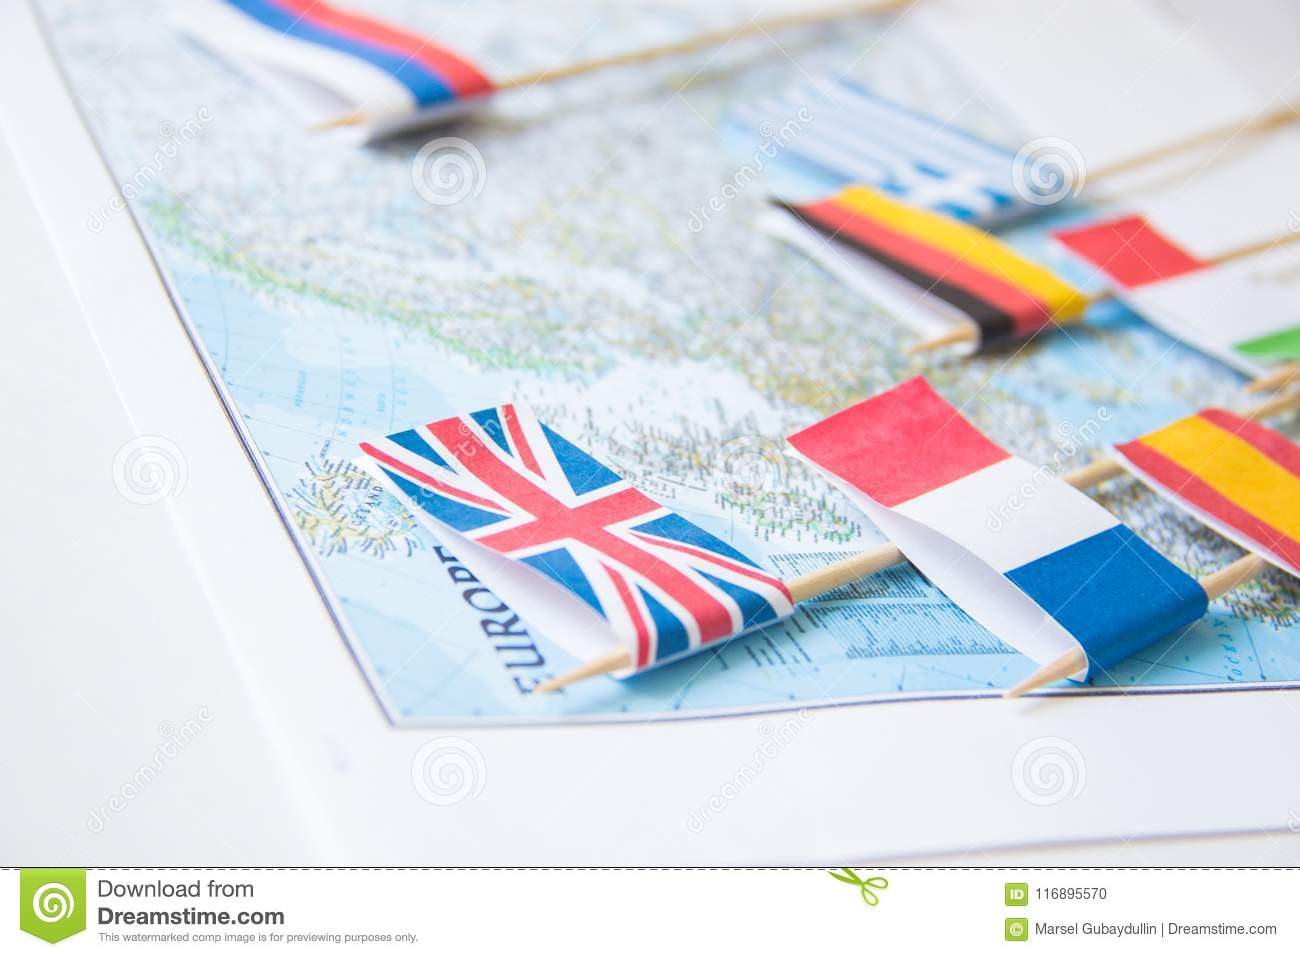 Colored Flags Of Europian Countries On A Map: France, Italy, England ...